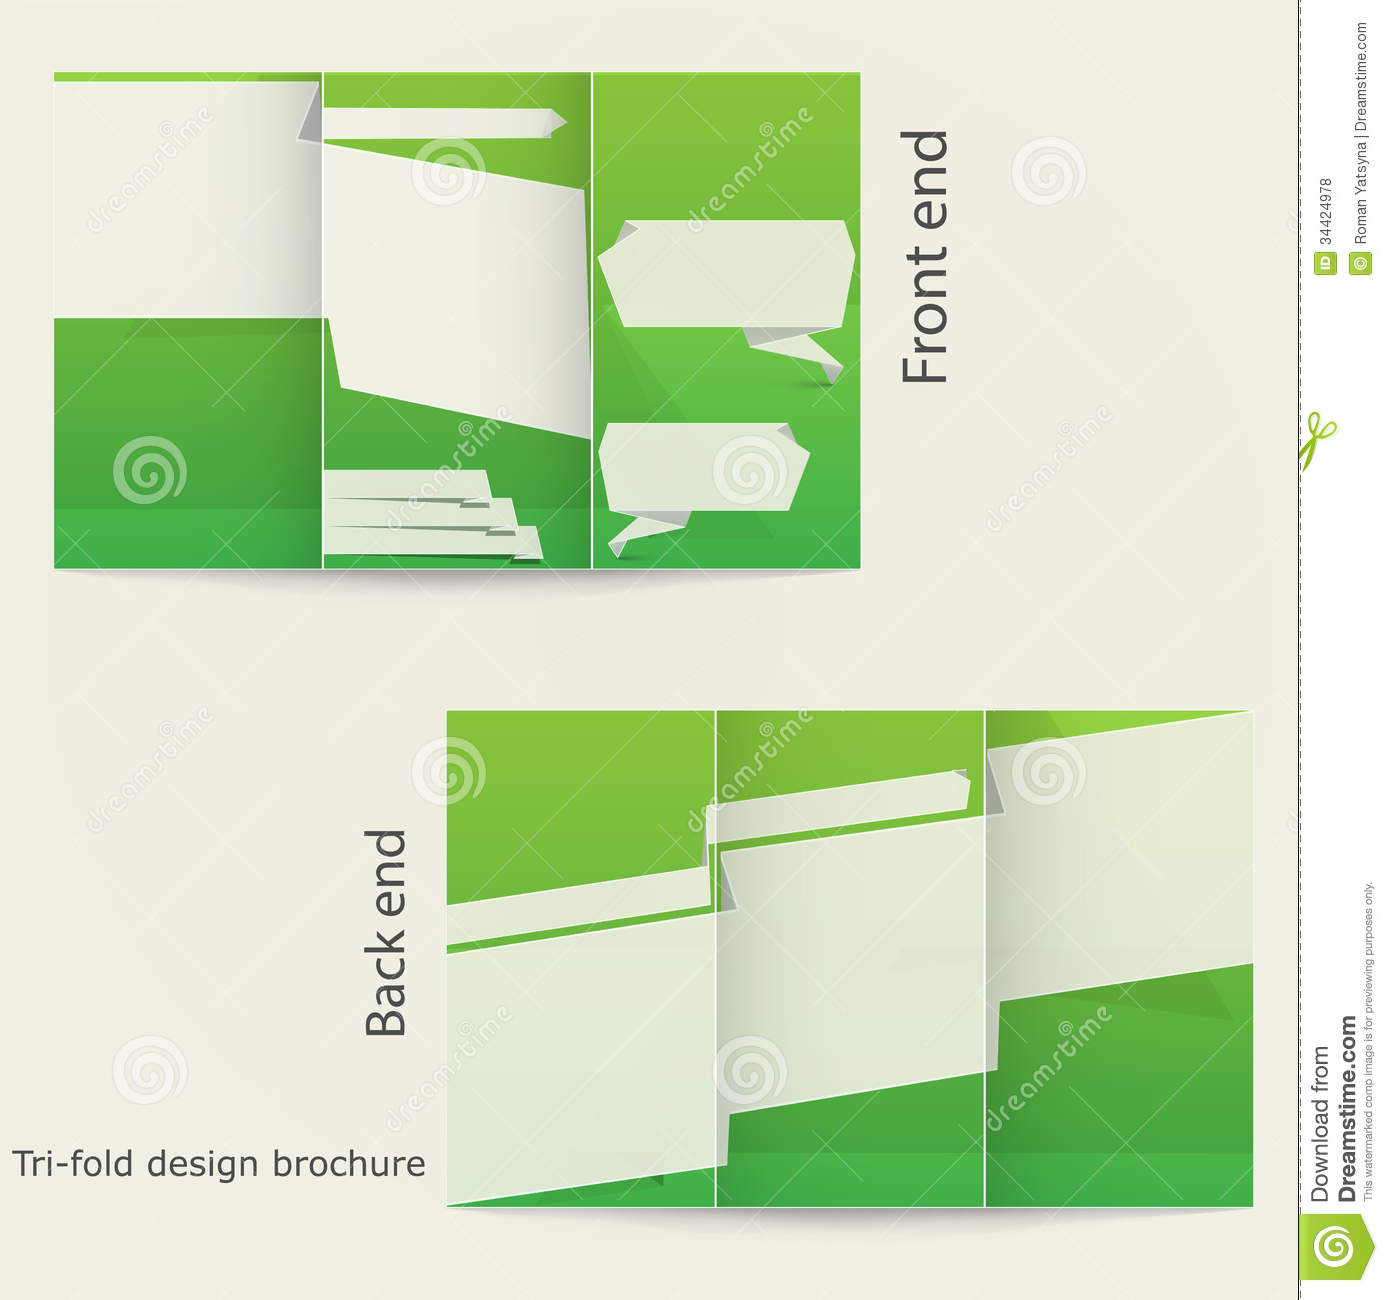 12 tri fold brochure template design images tri fold for Folded brochure template